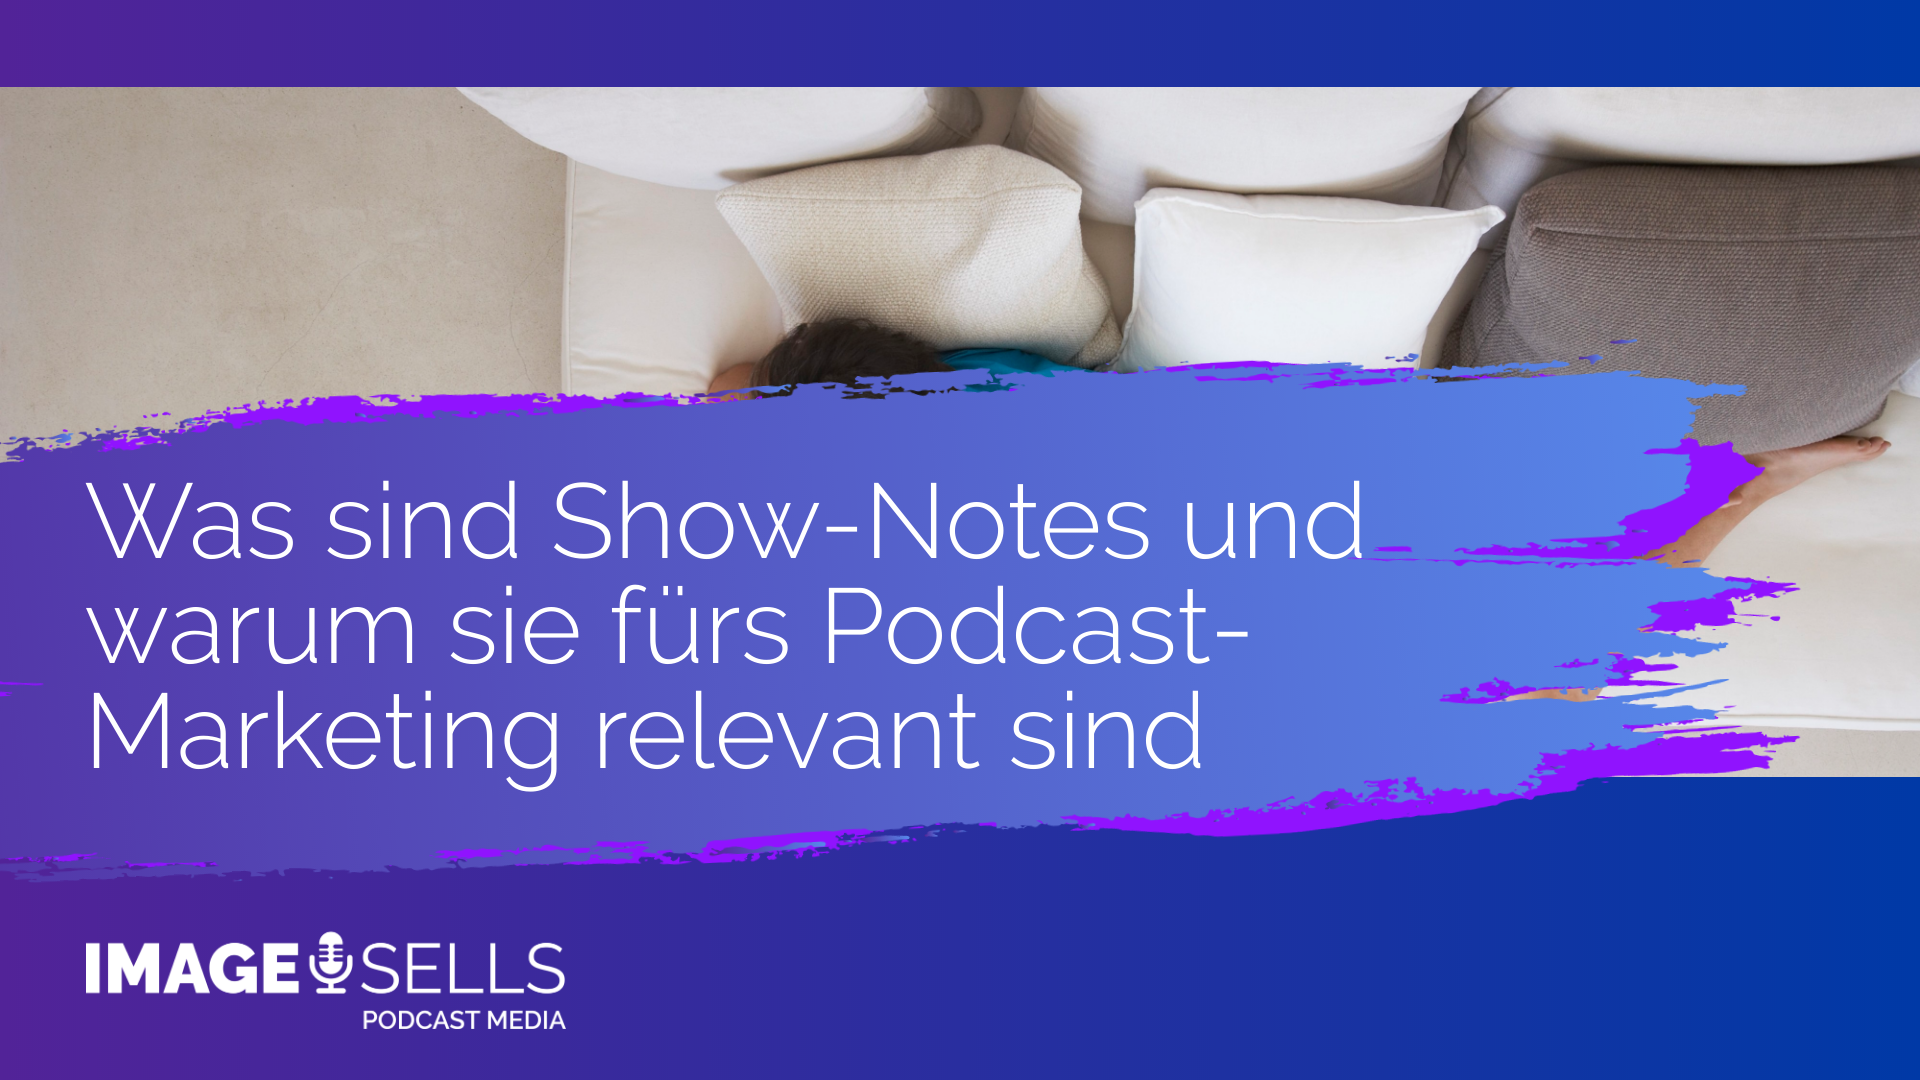 Was sind Show-Notes und warum sie fürs Podcast-Marketing relevant sind